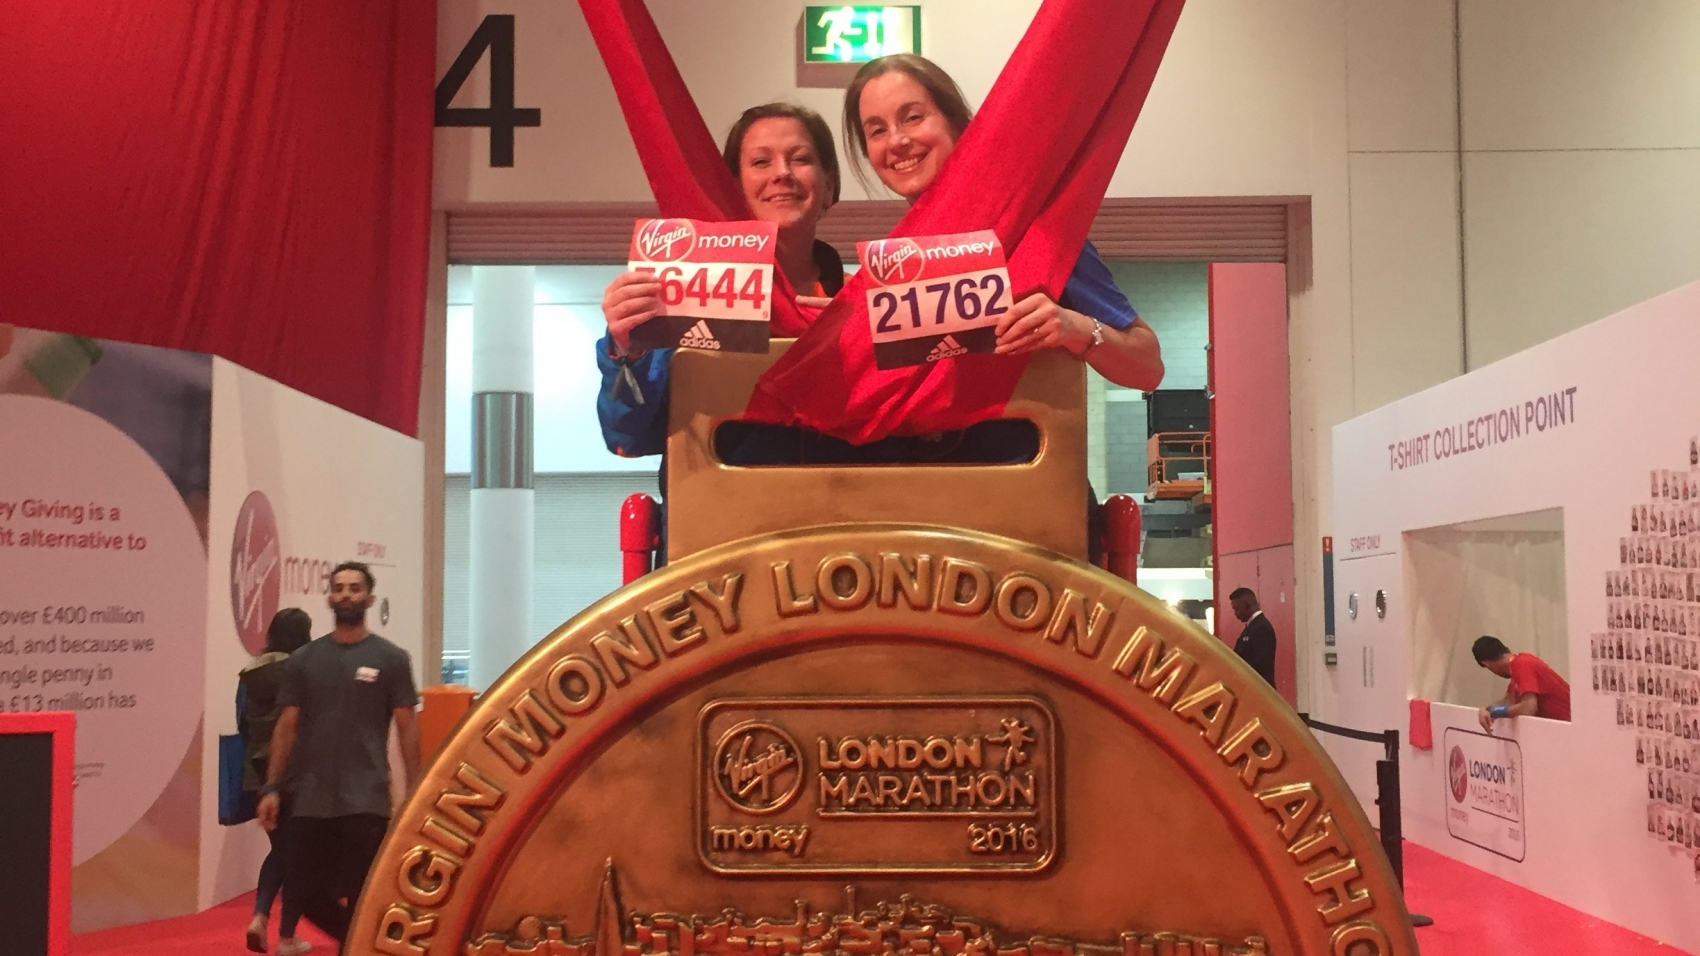 10 things I Love about the London Marathon